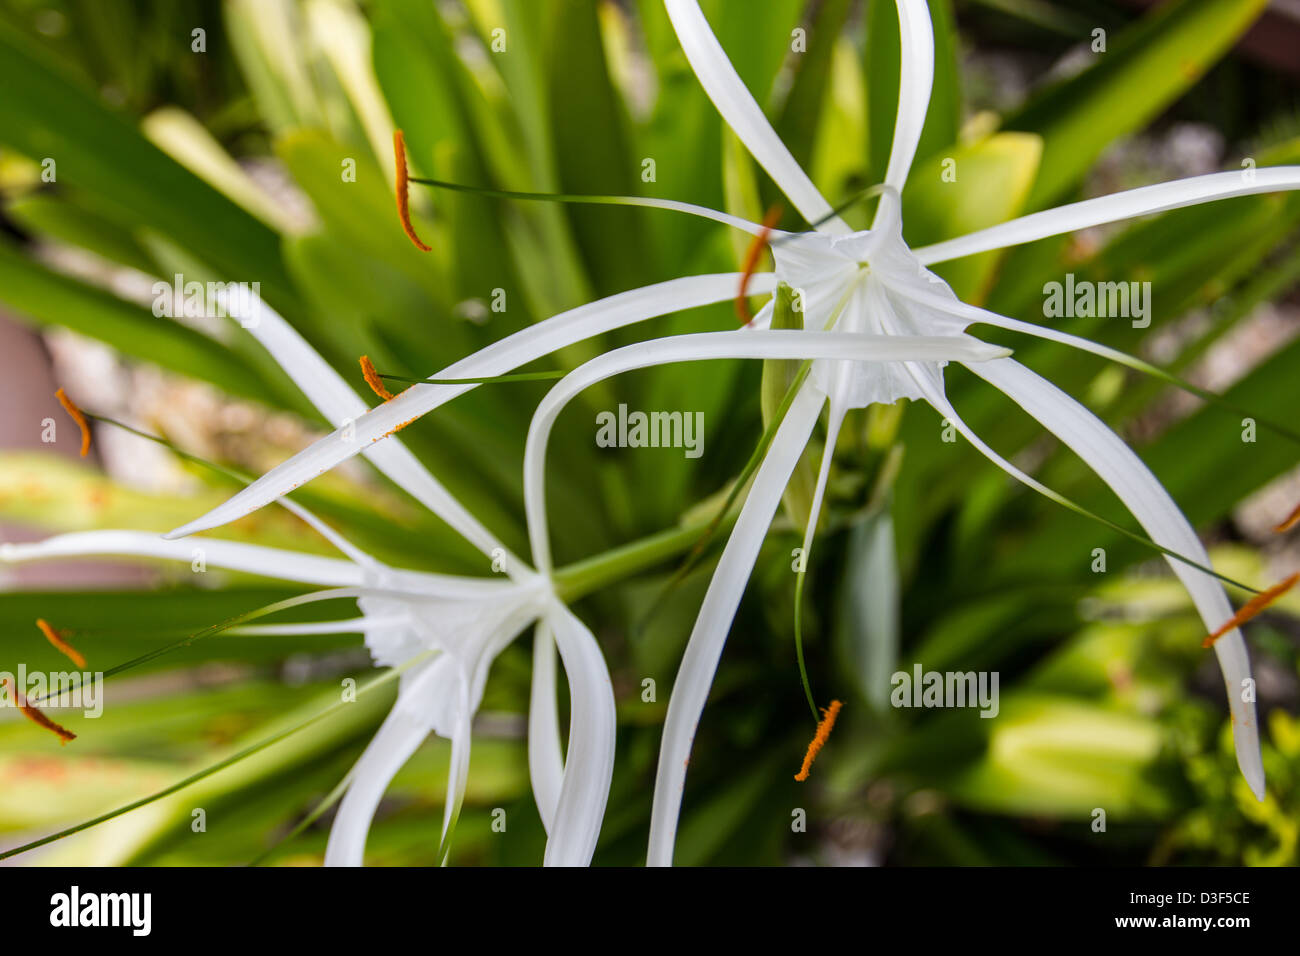 Caribbean spider lily tropical flower stock photo 53808622 alamy caribbean spider lily tropical flower izmirmasajfo Images